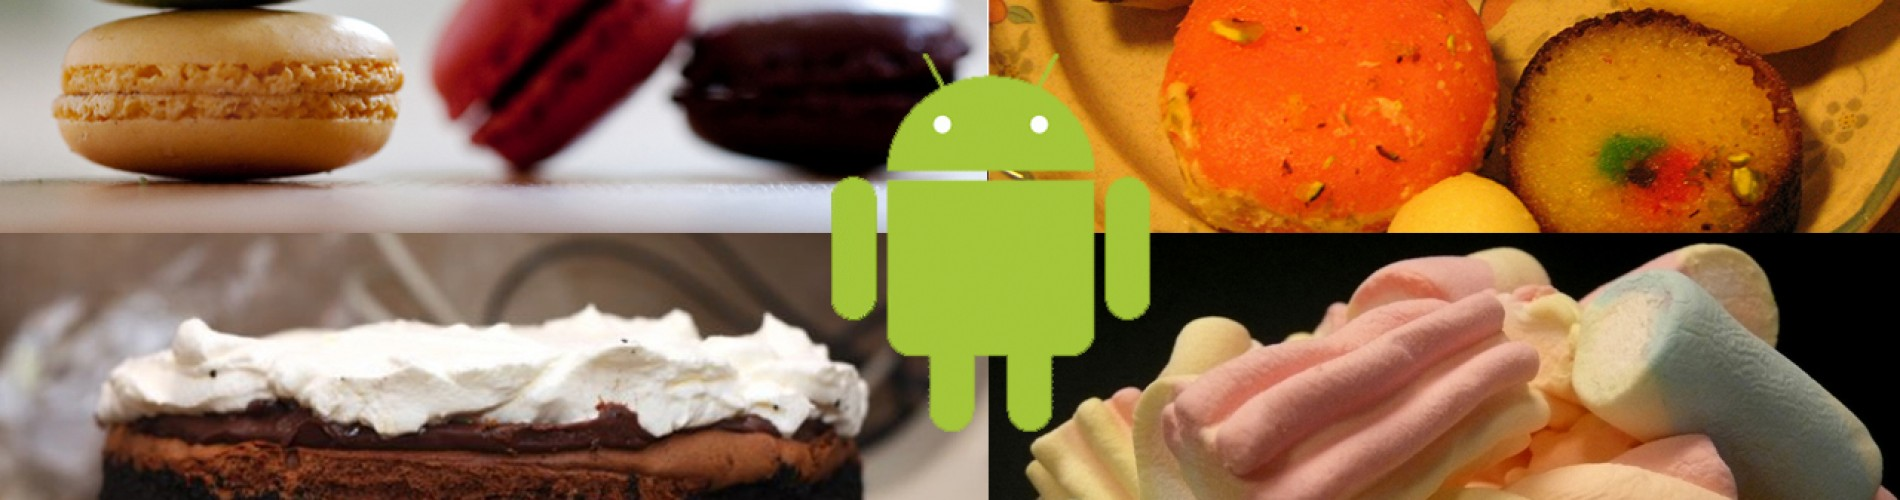 Android M to be announced this year: Google engineer